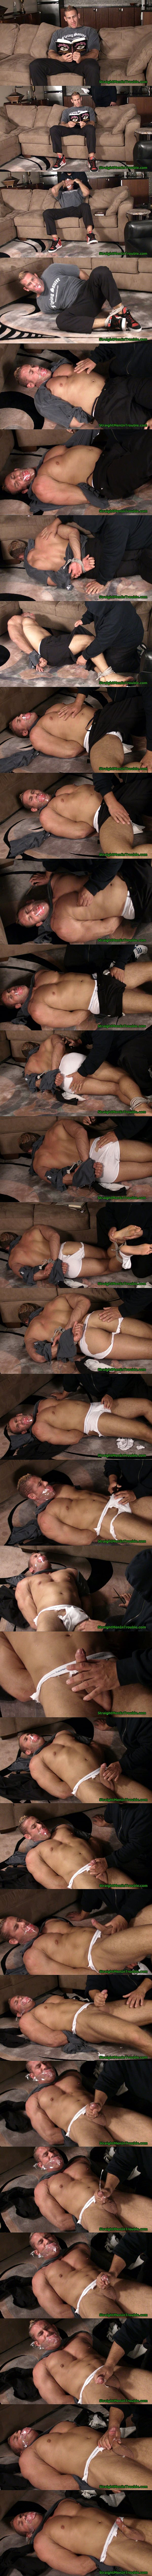 Straightmenintrouble - Tim Adonis - A Quiet Evening at Home 02